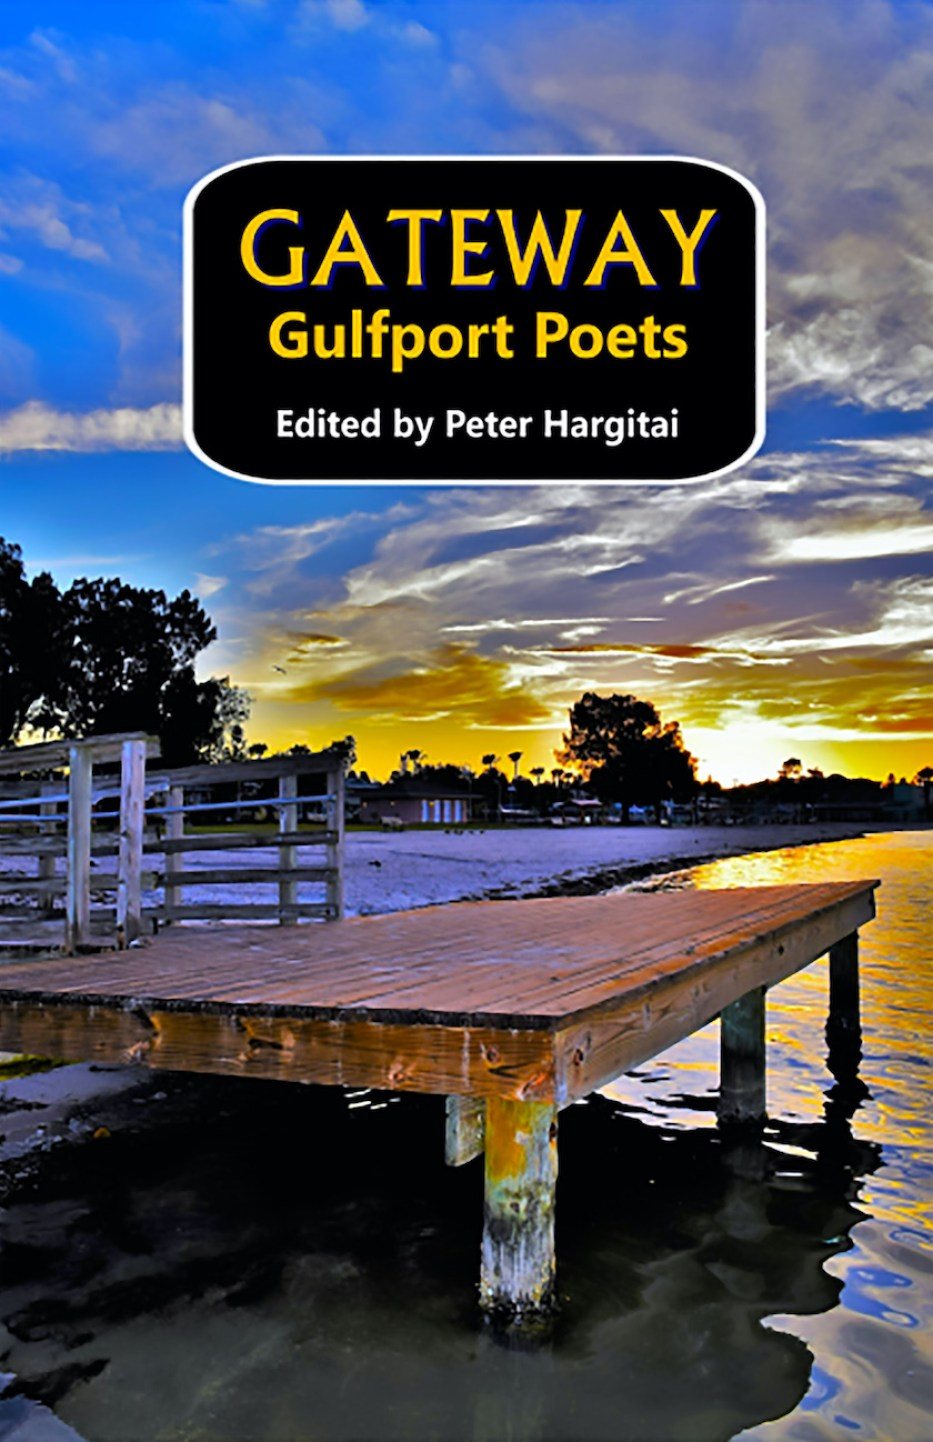 """The cover of a book of poetry showing a dock on the water at sunset with the words """"Gateway: Gulfport Poets Edited by Peter Hargatai"""" in a rounded black box at the top."""